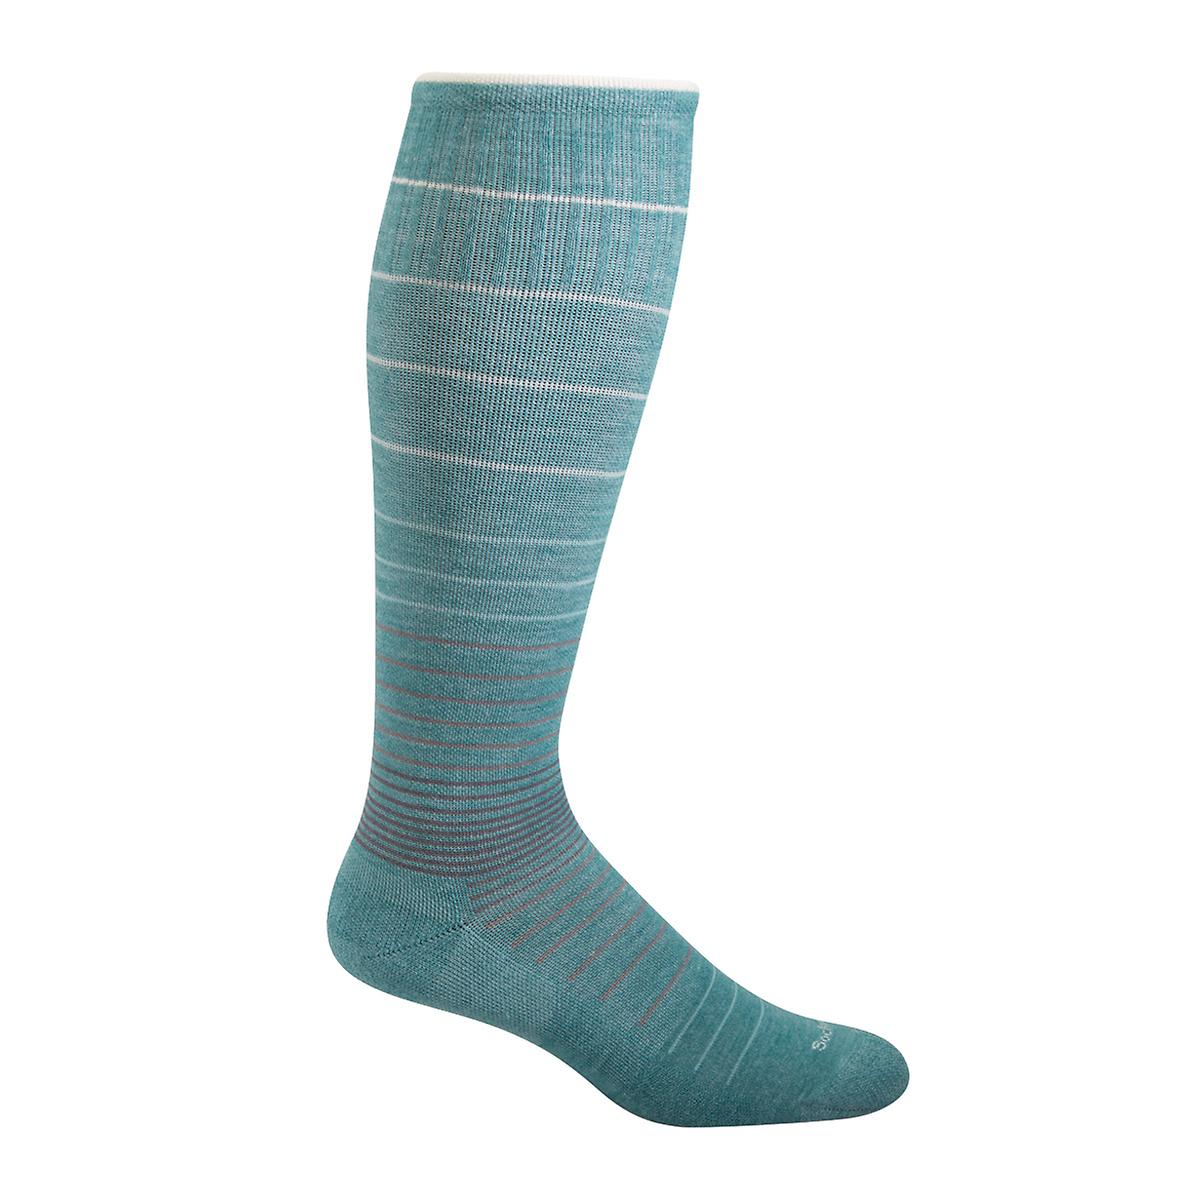 Mineral Blue Compression Socks